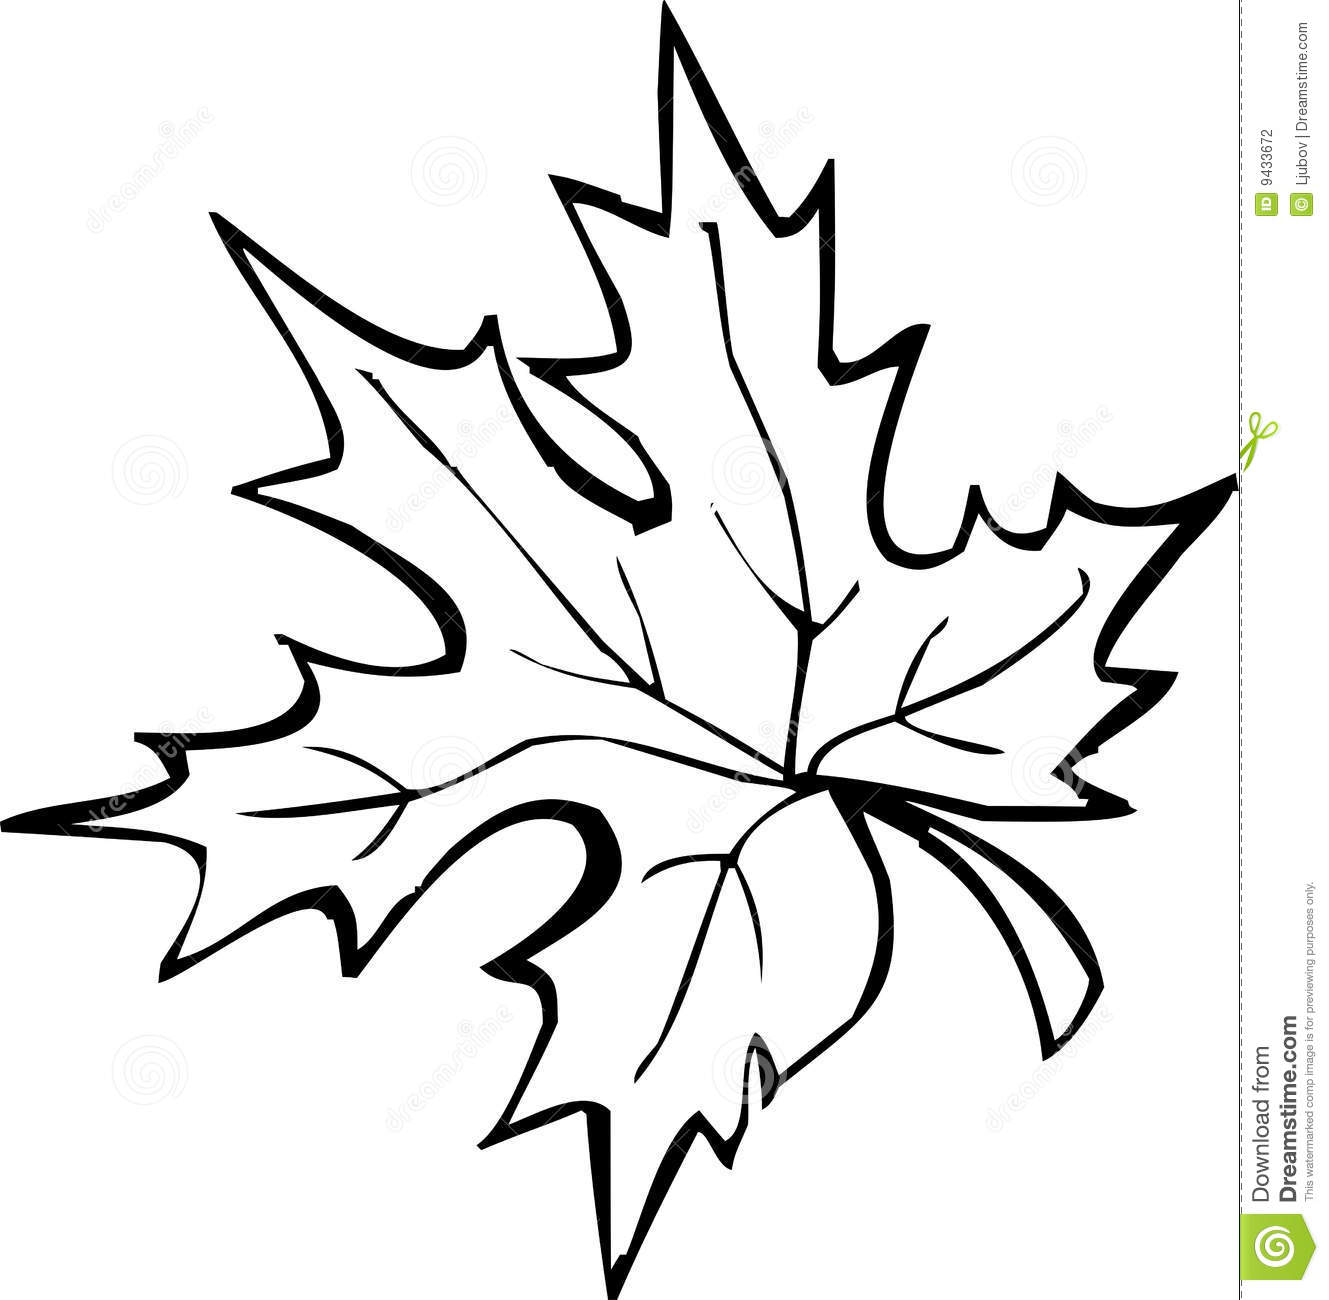 1329x1300 leaf black and white fall clipart